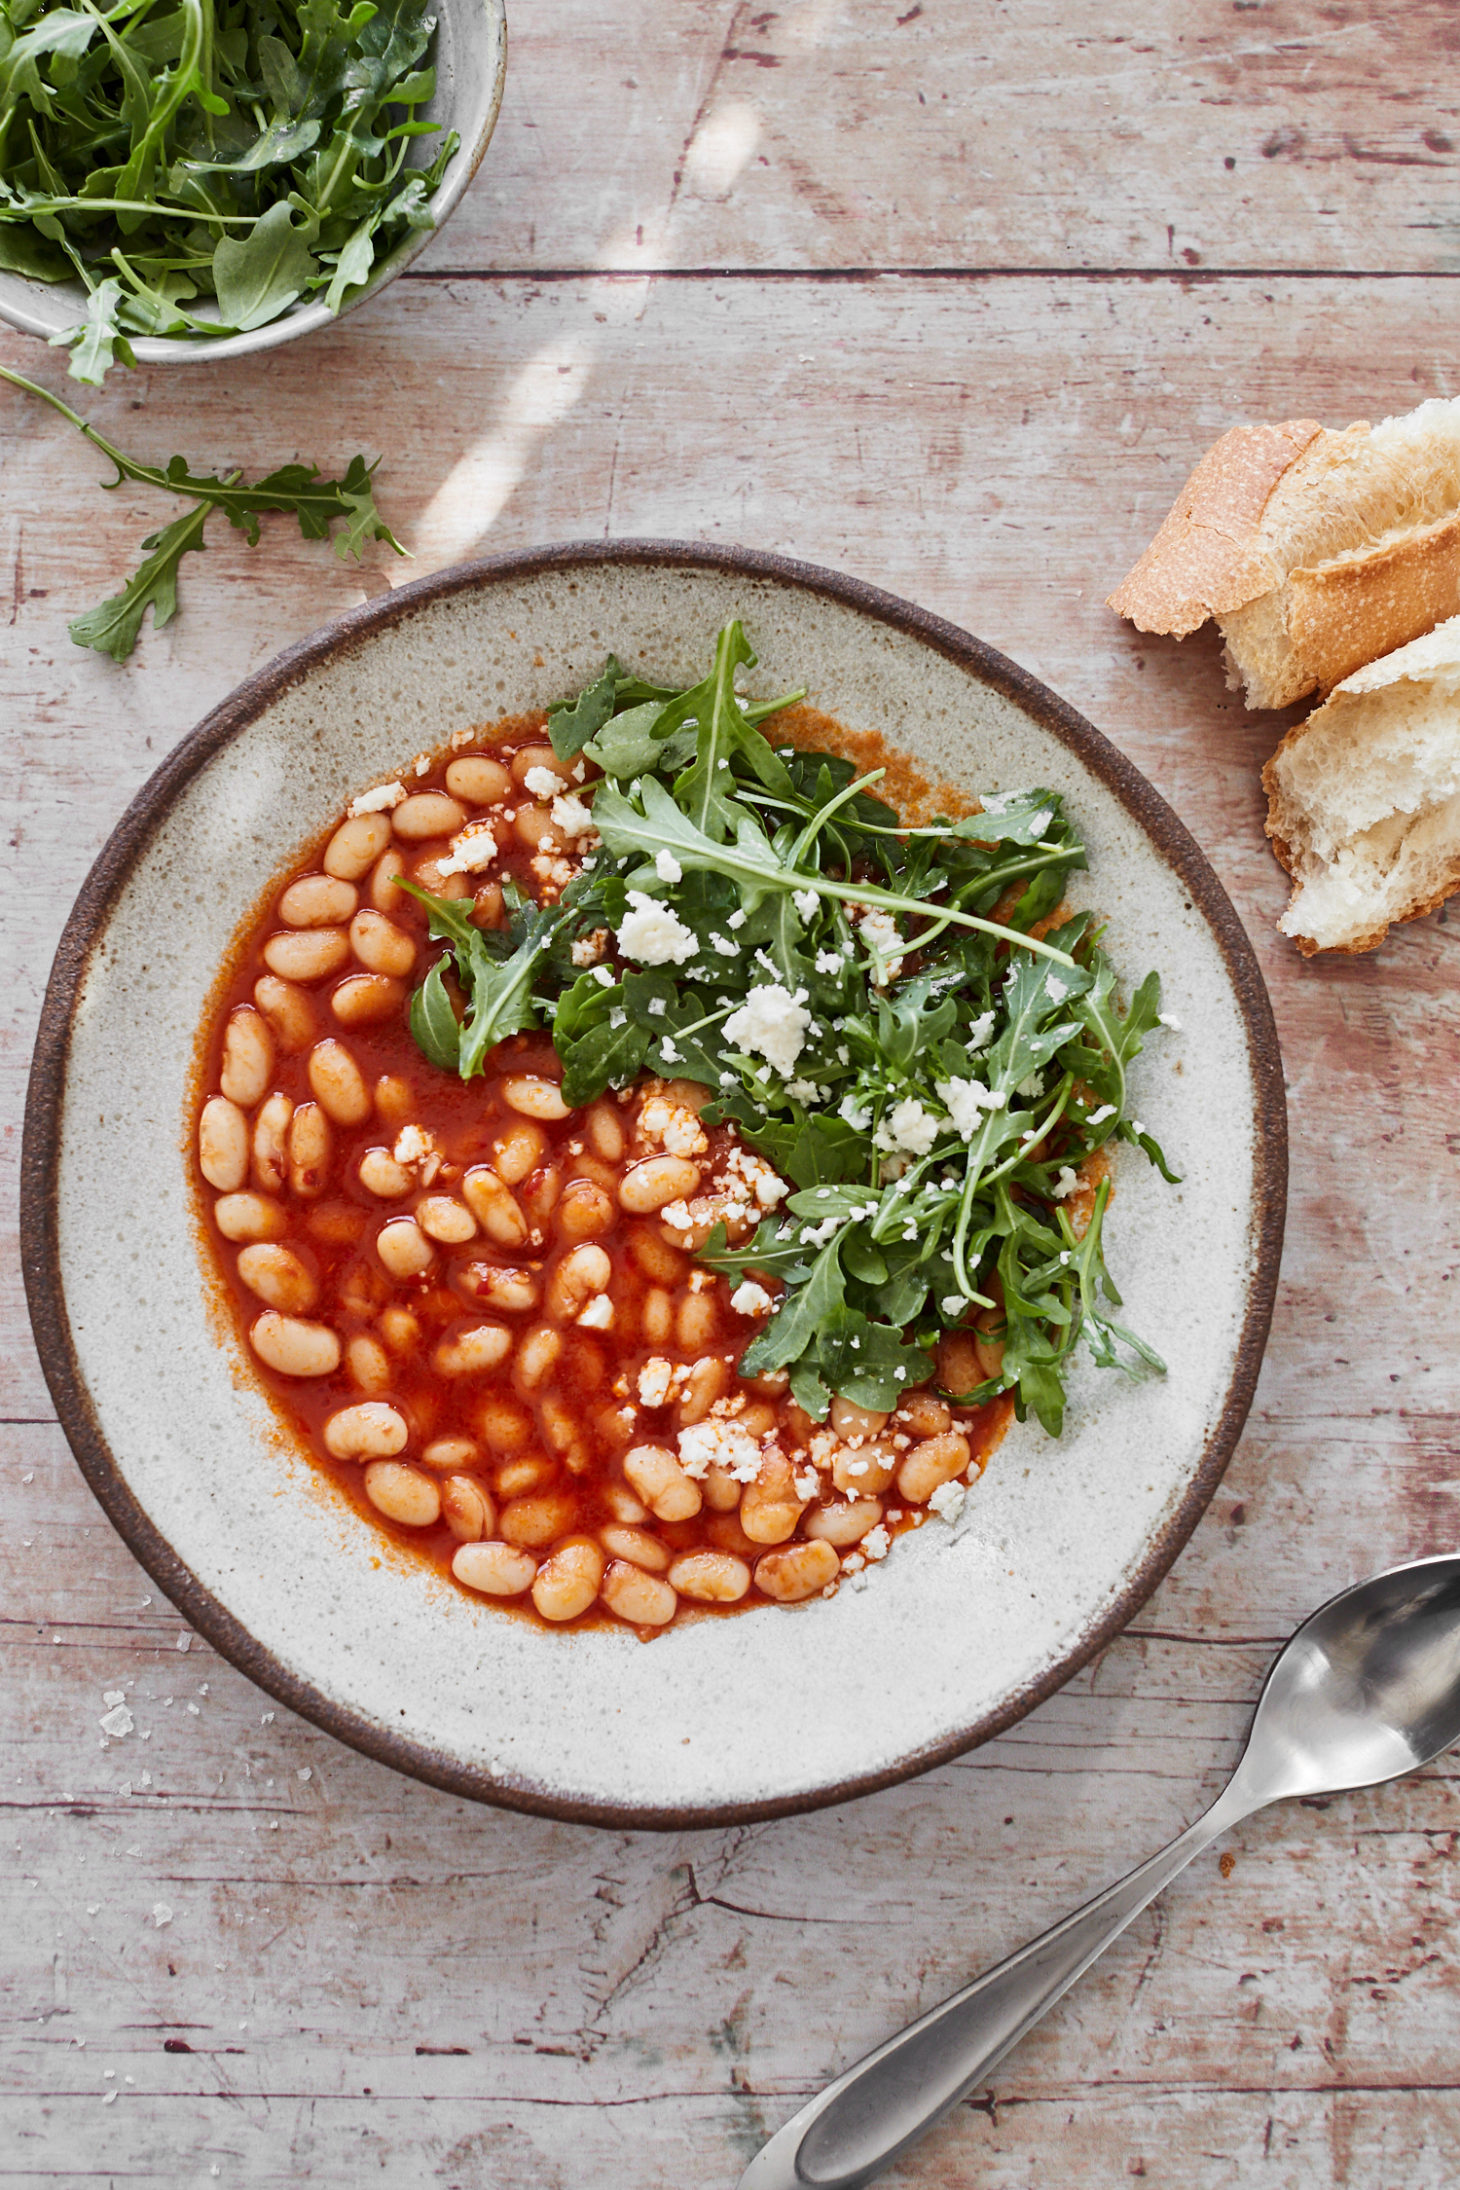 Light image with a bowl of tomato bean stew with arugula on top on a white background.